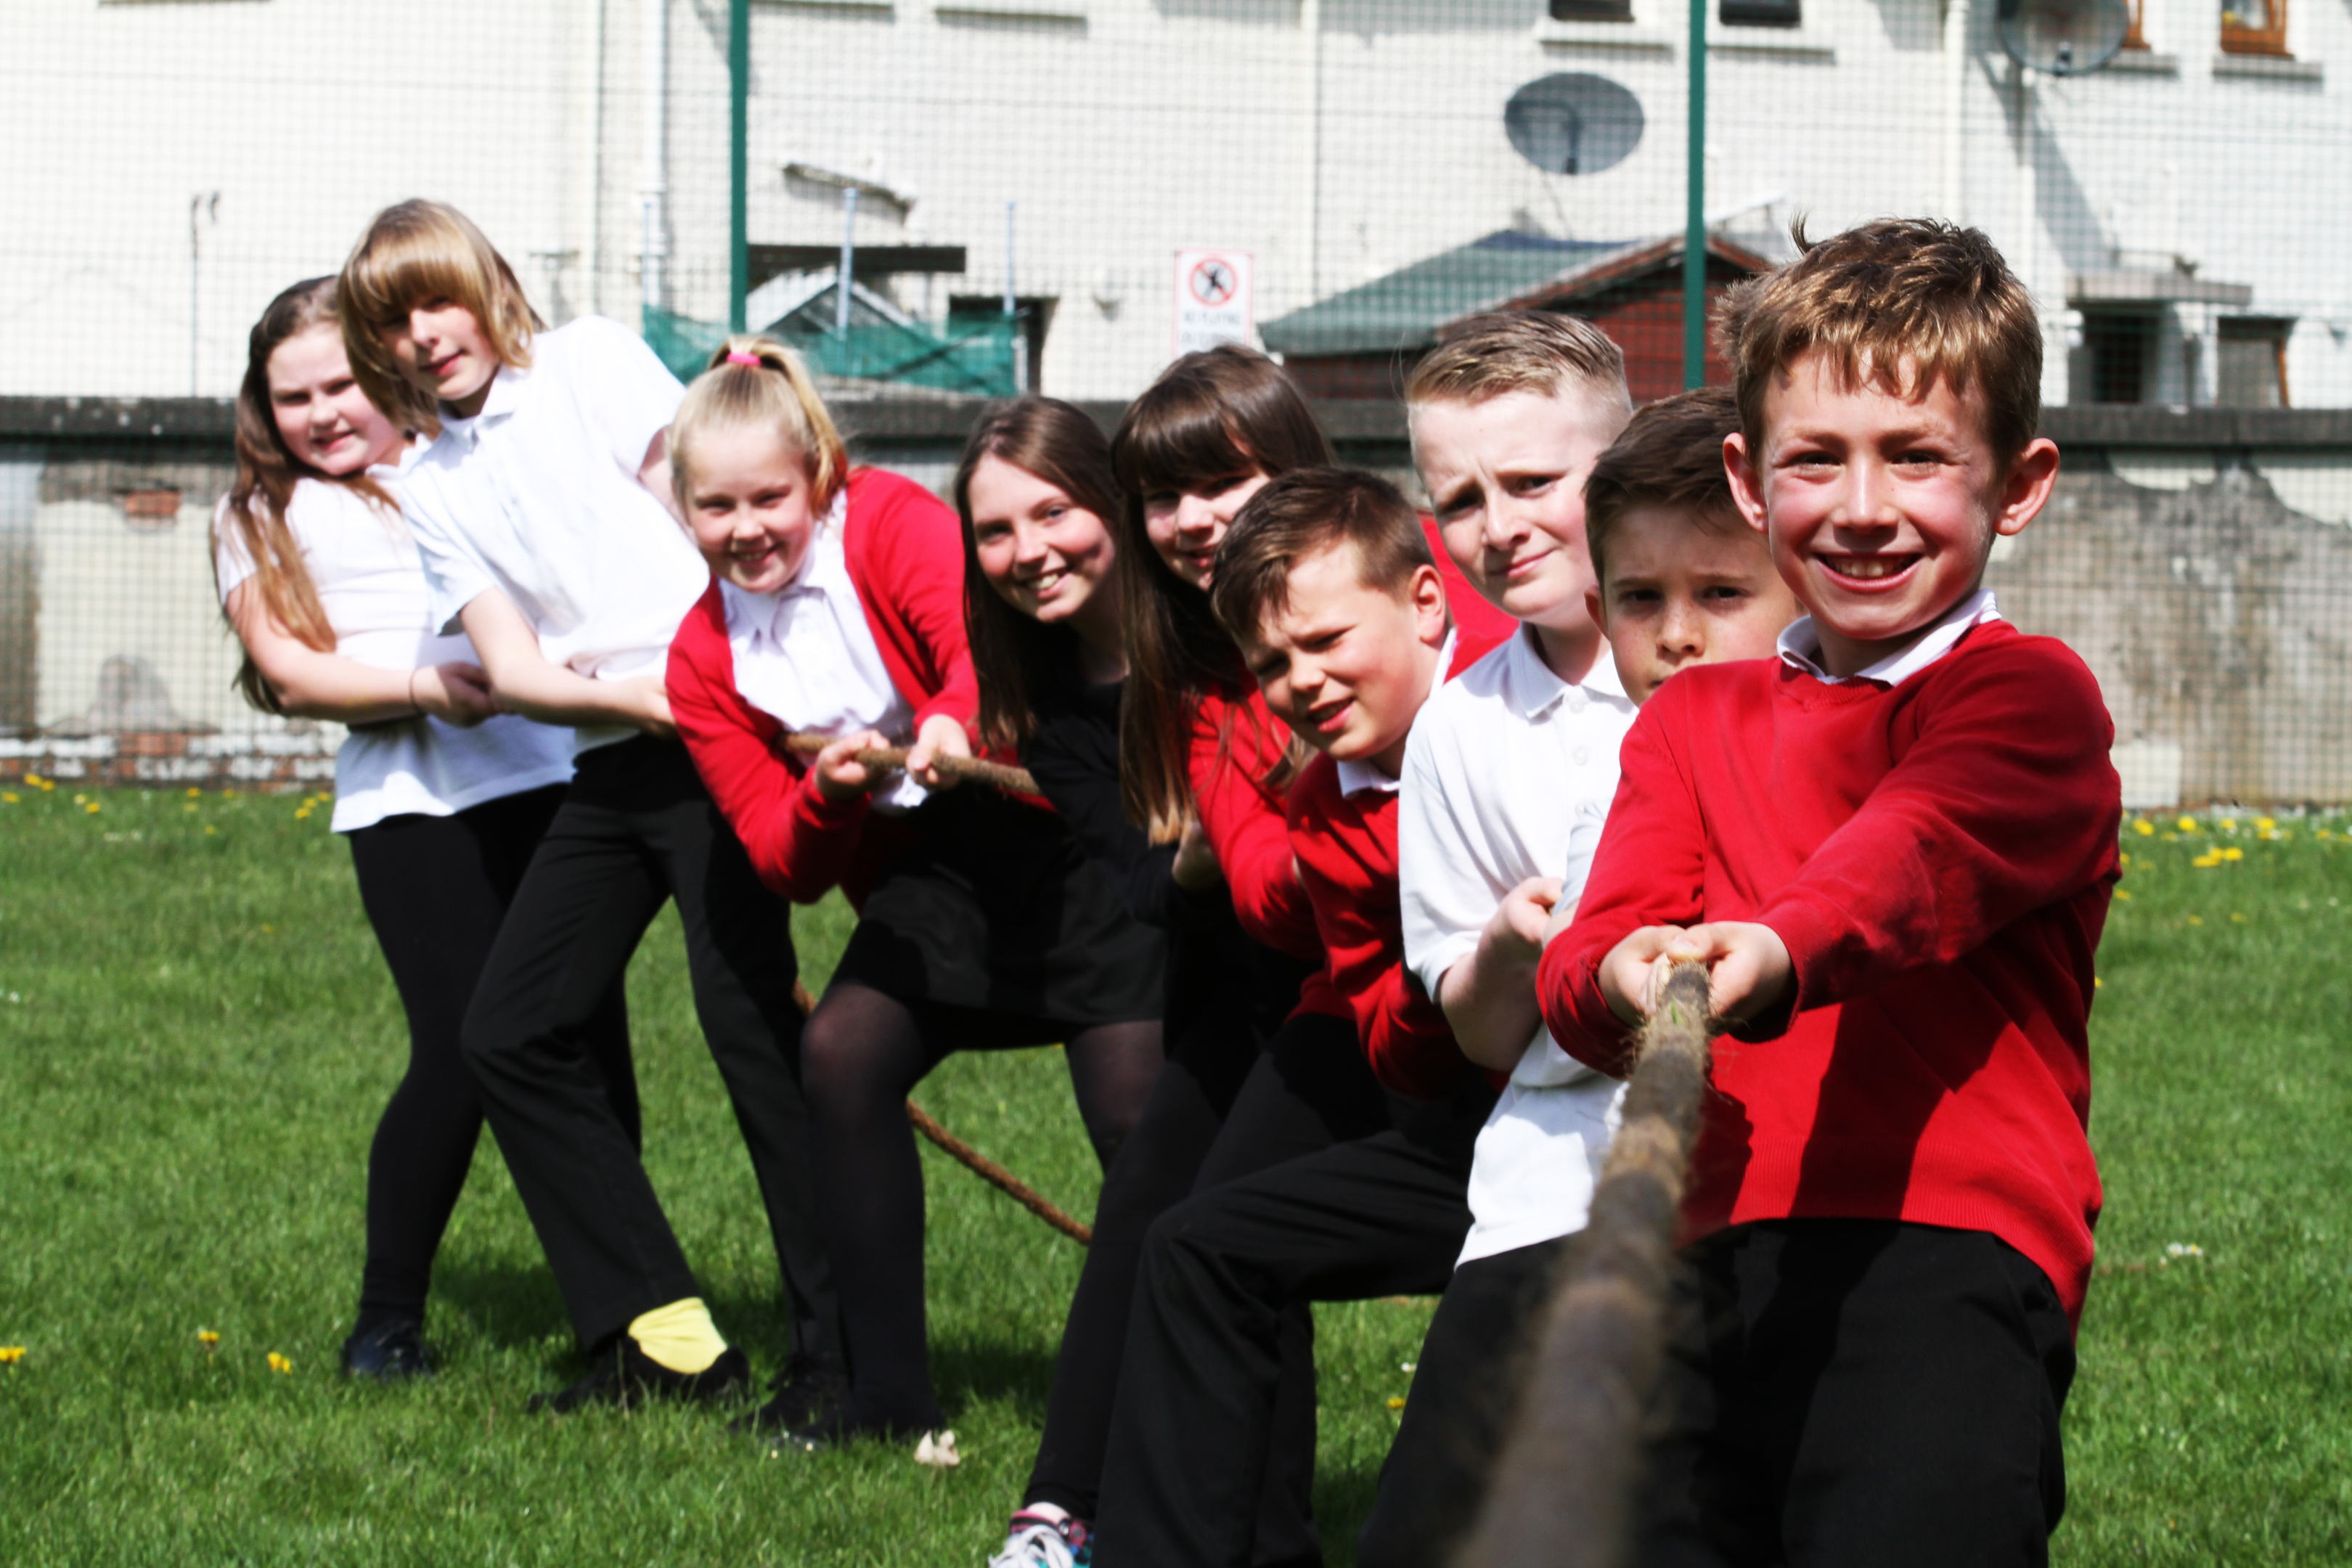 The kids at Newtyle Primary School enjoying their tug o' war games.